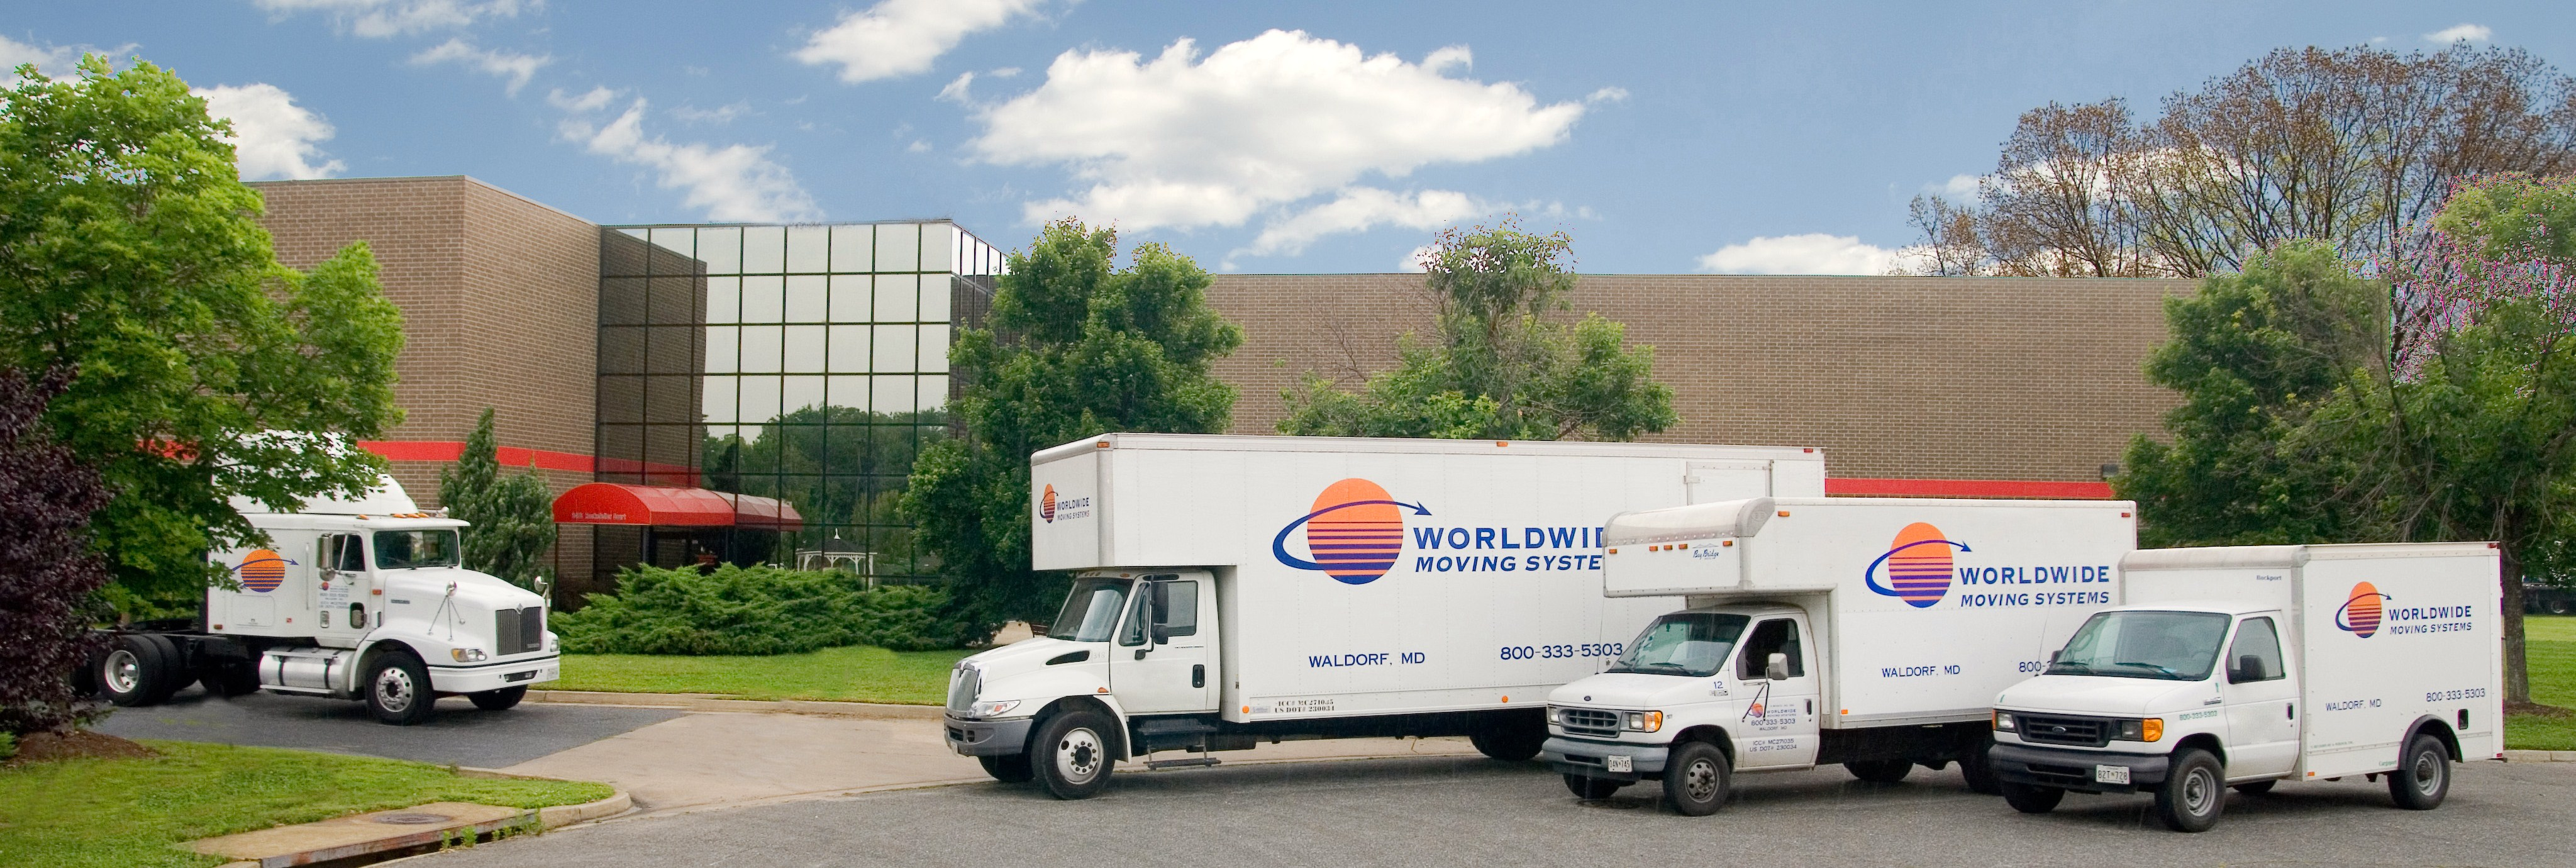 worldwide-moving-systems